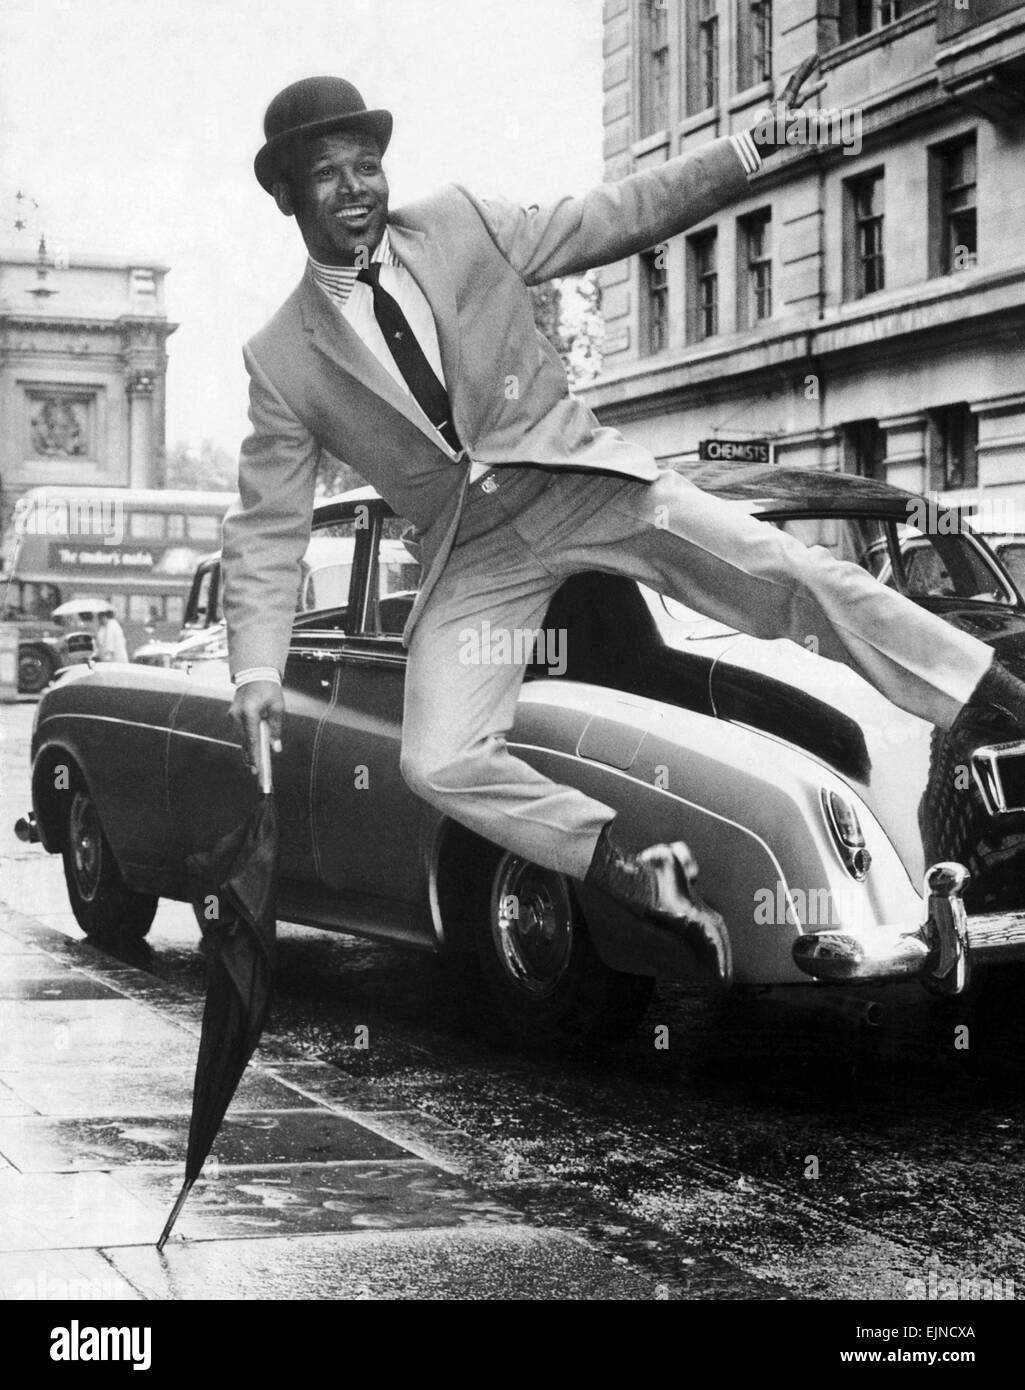 Boxer Sugar Ray Robinson doing an impression of Sammy Davis Junior dressed in a city bowler hat and umbrella, in - Stock Image